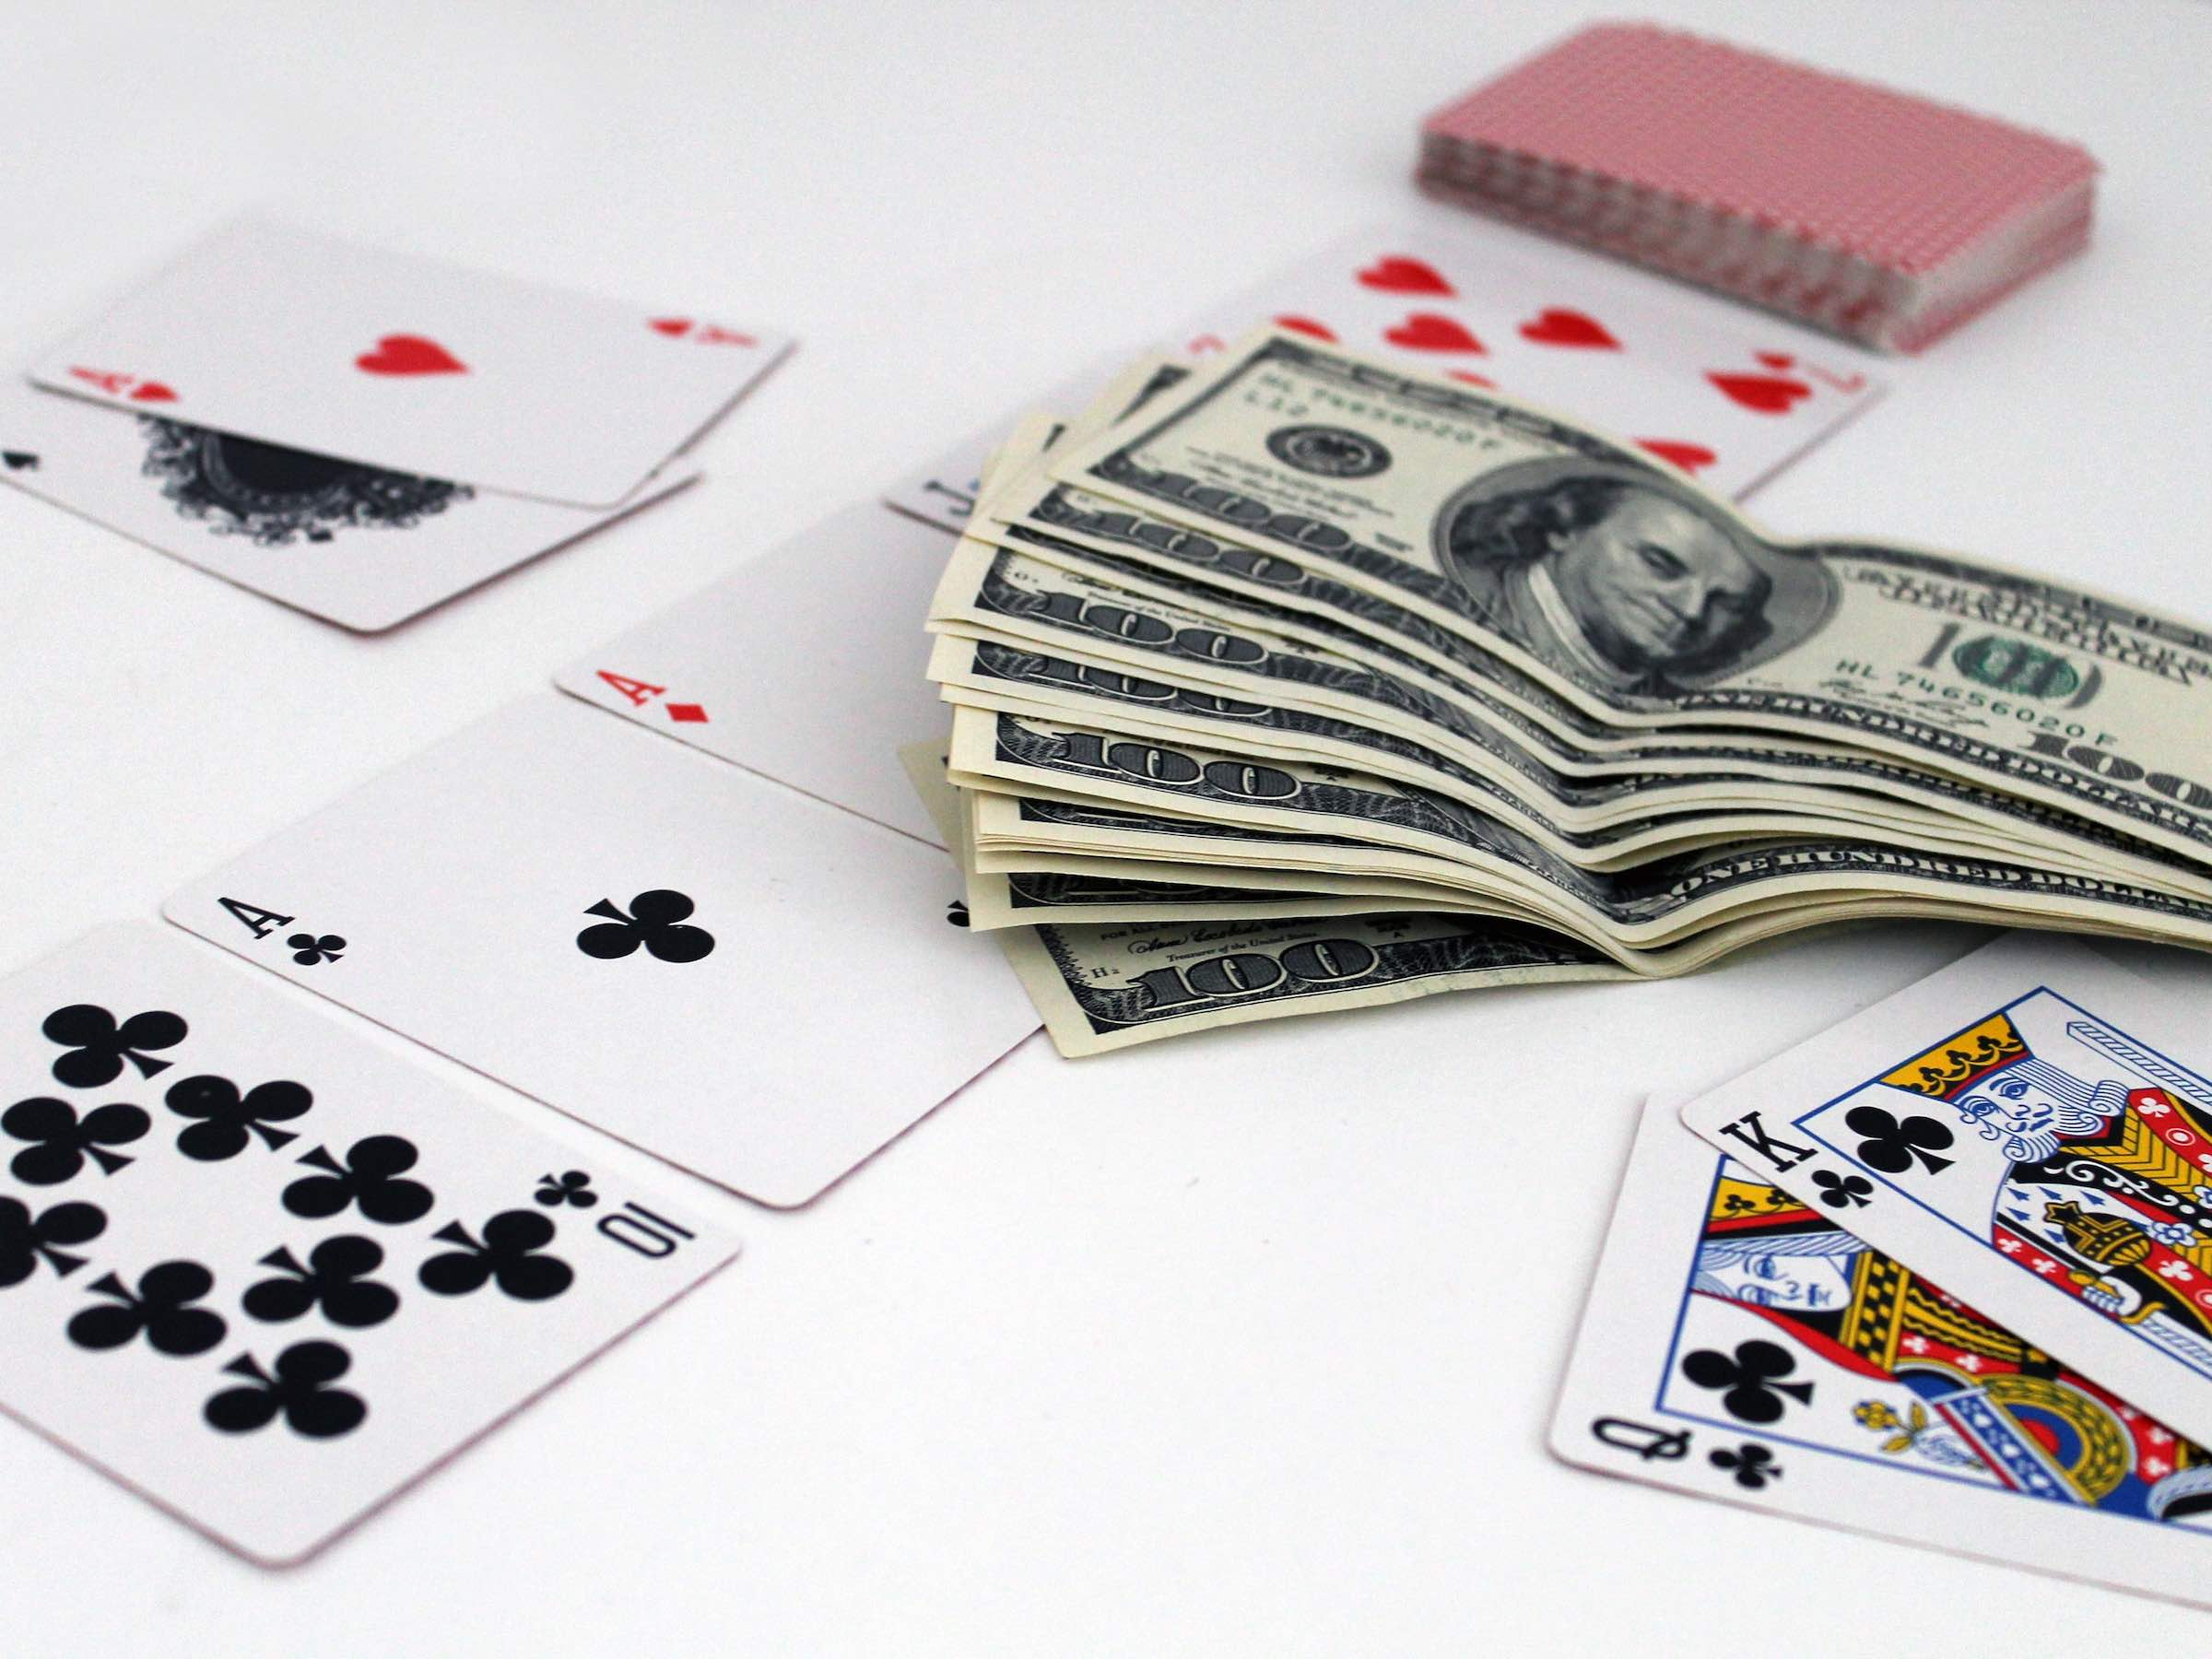 These are tips for winning playing Domino online and the kinds of bonuses offered